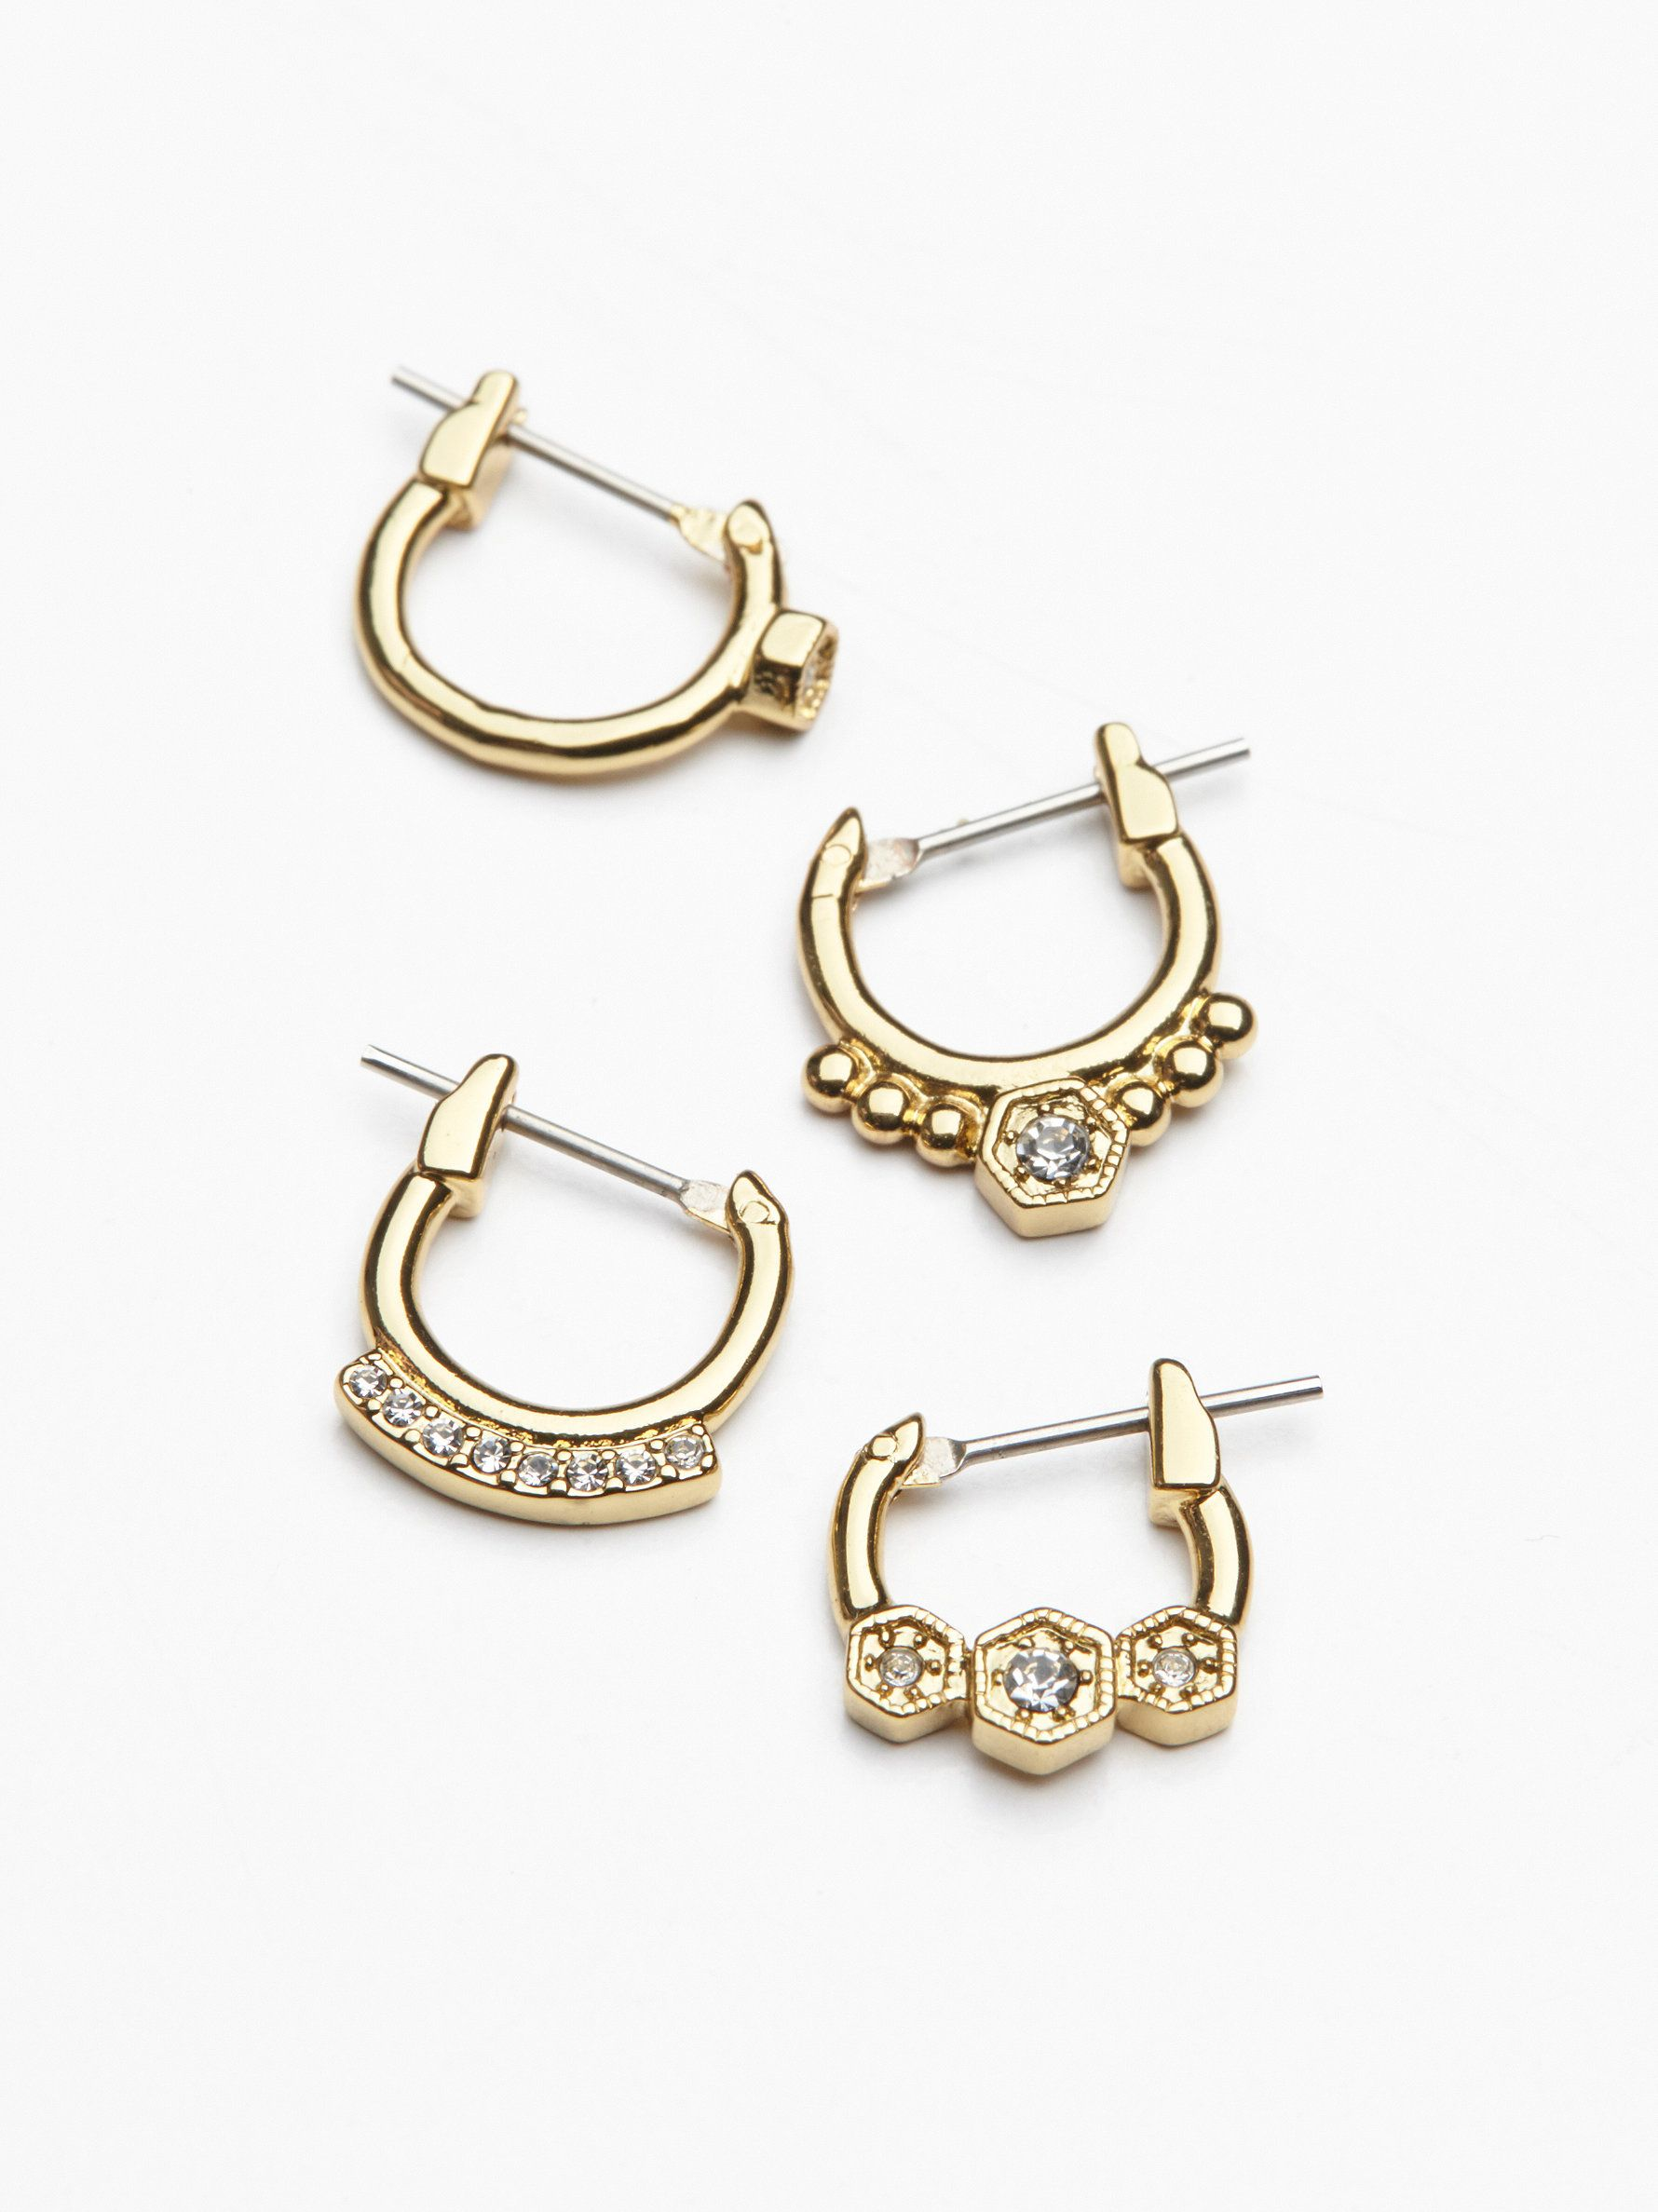 b clip fashion sparkly amazon womens snap back earrings s com women on